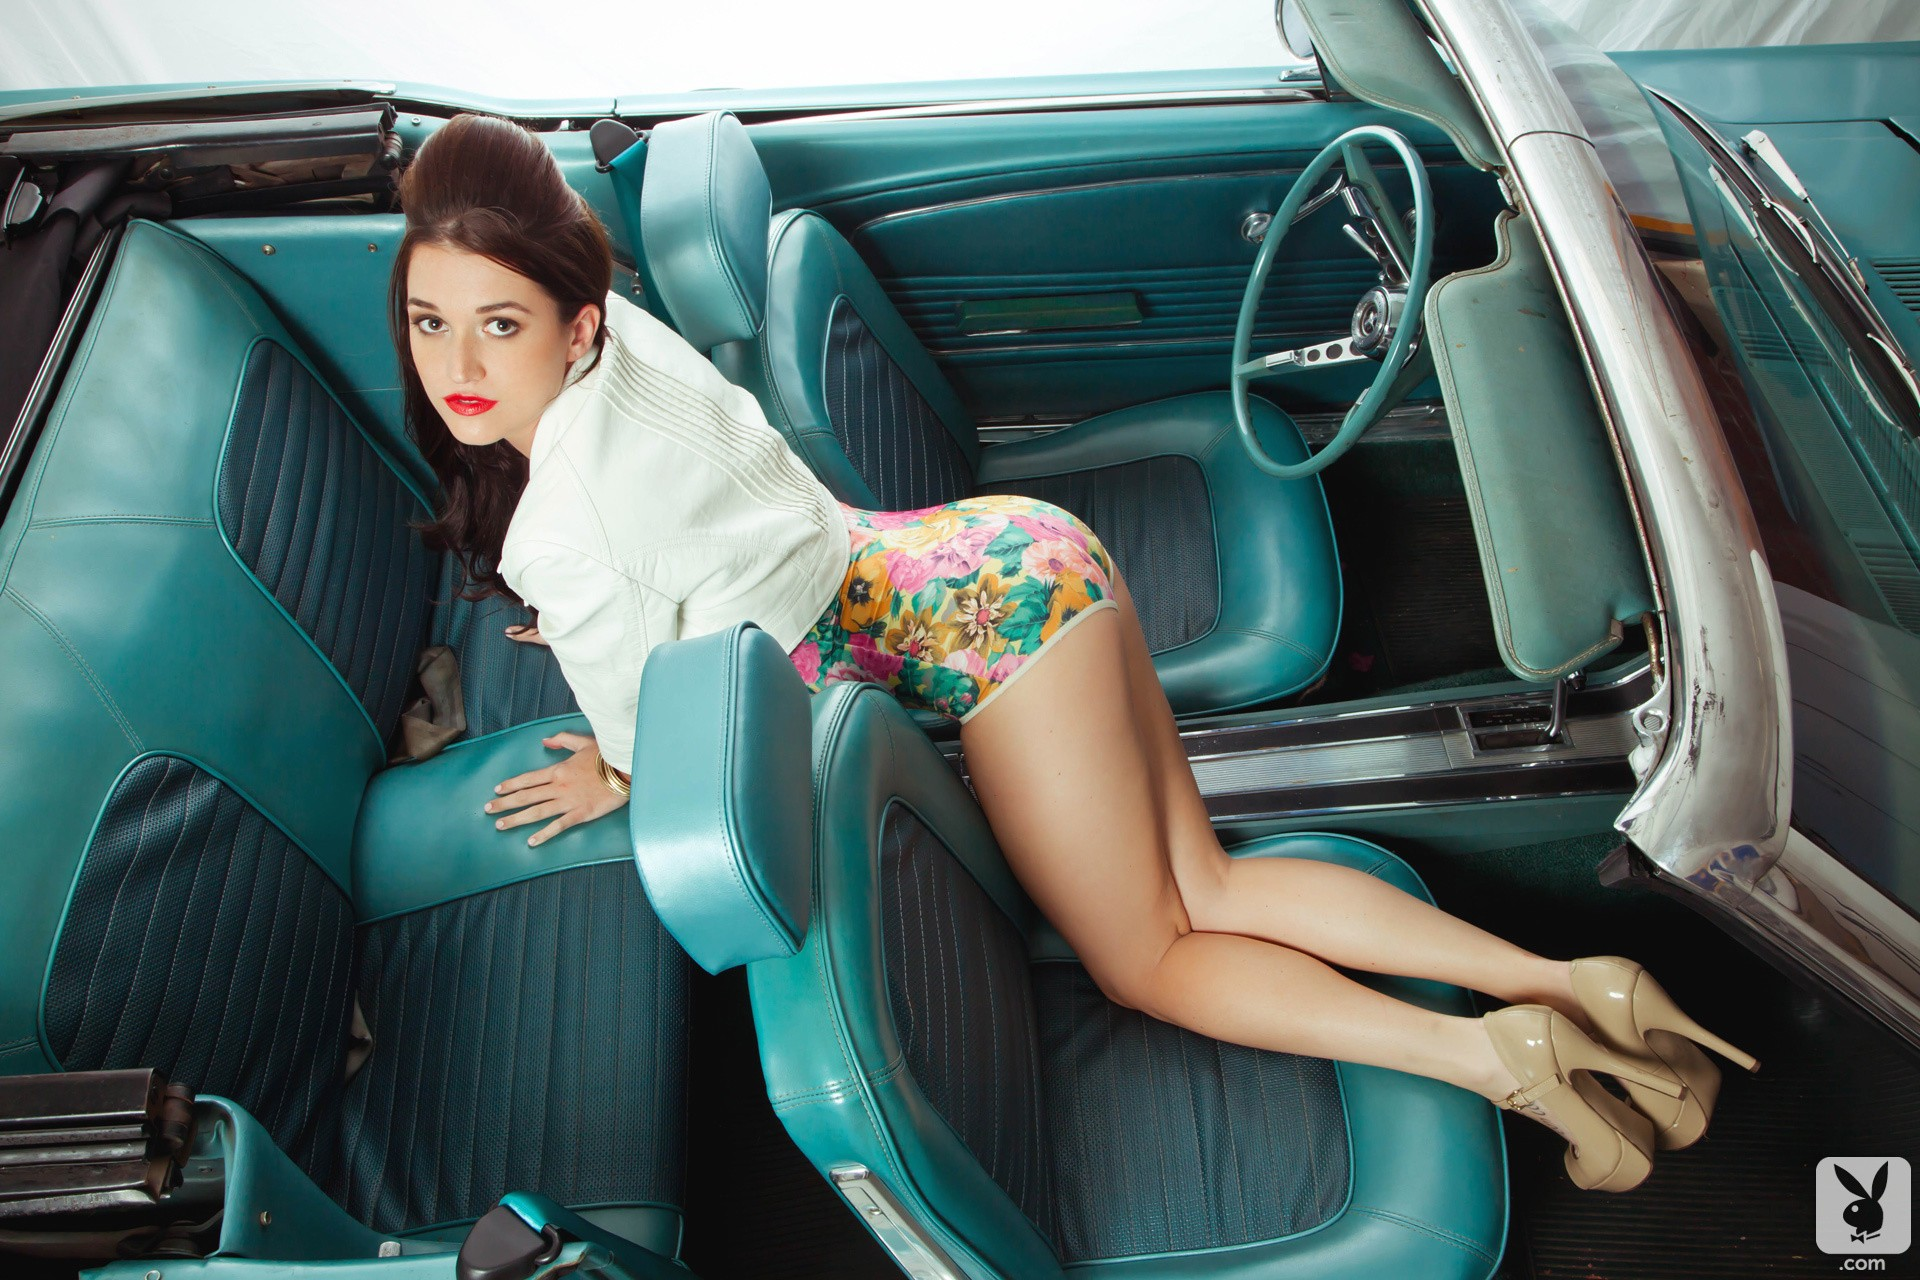 jade roper does retro playboy classic photo shoot in